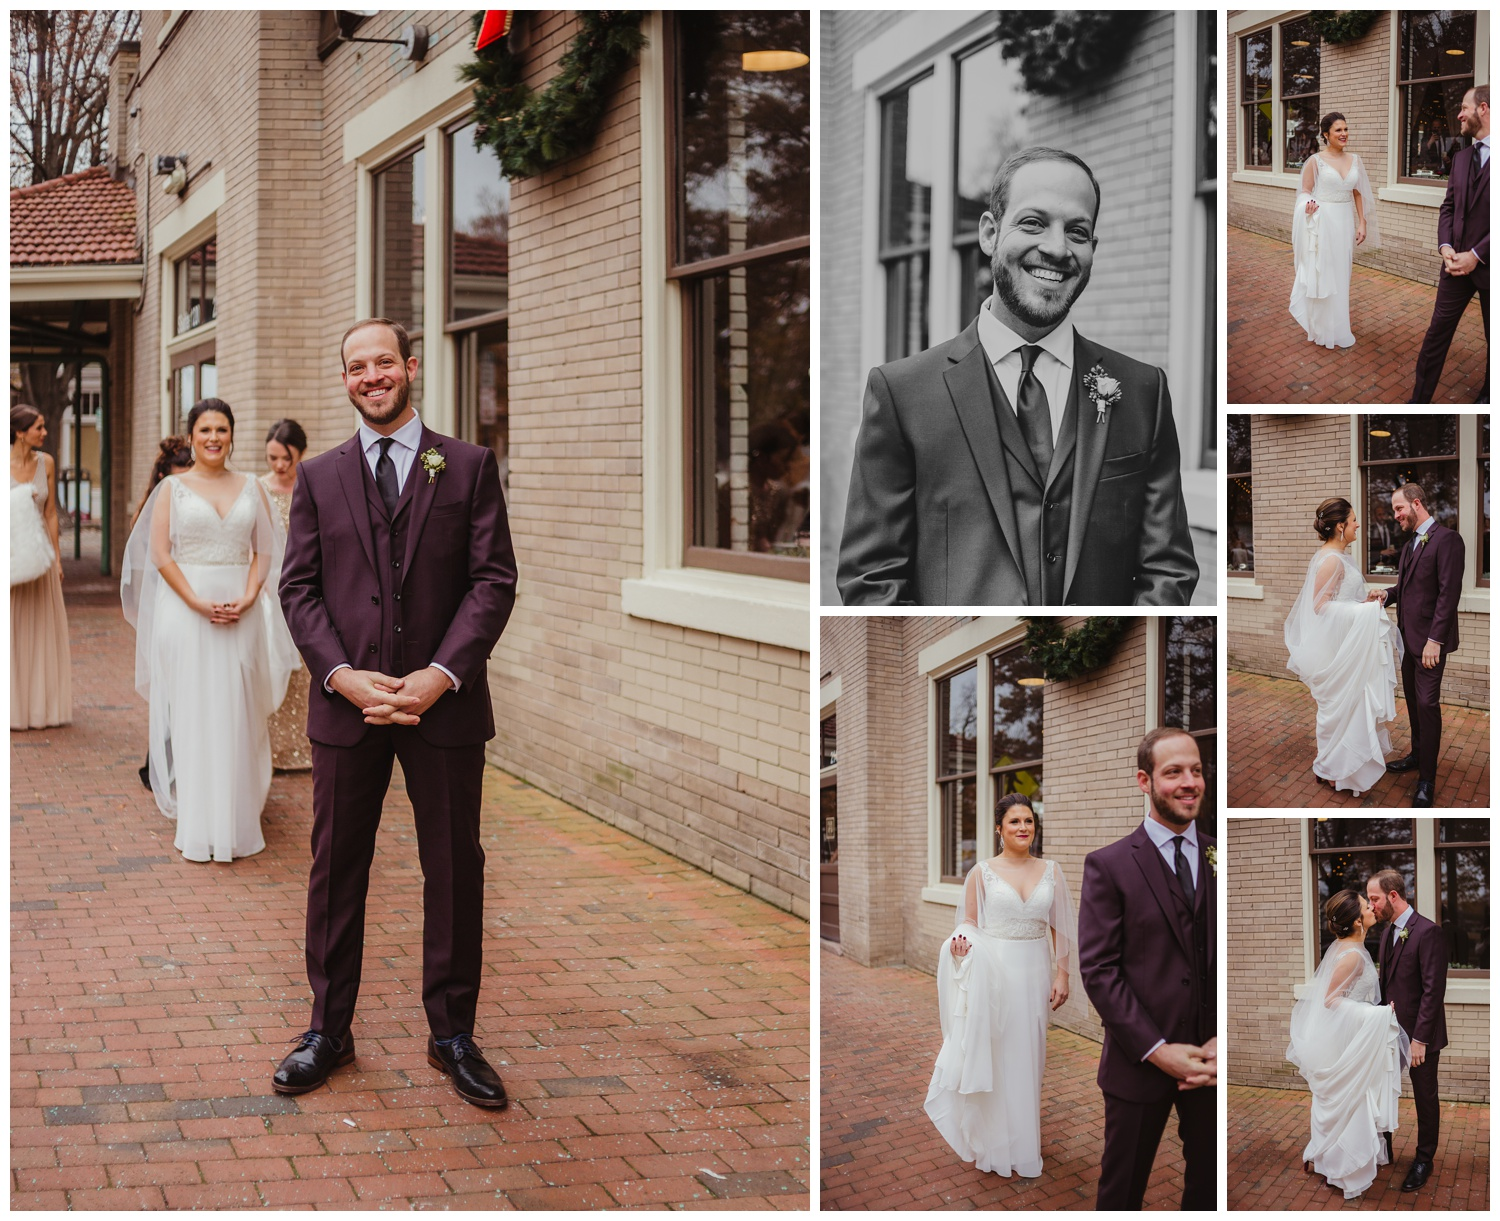 The bride and groom had a first look outside before their wedding ceremony in downtown Raleigh, photos by Rose Trail Images.